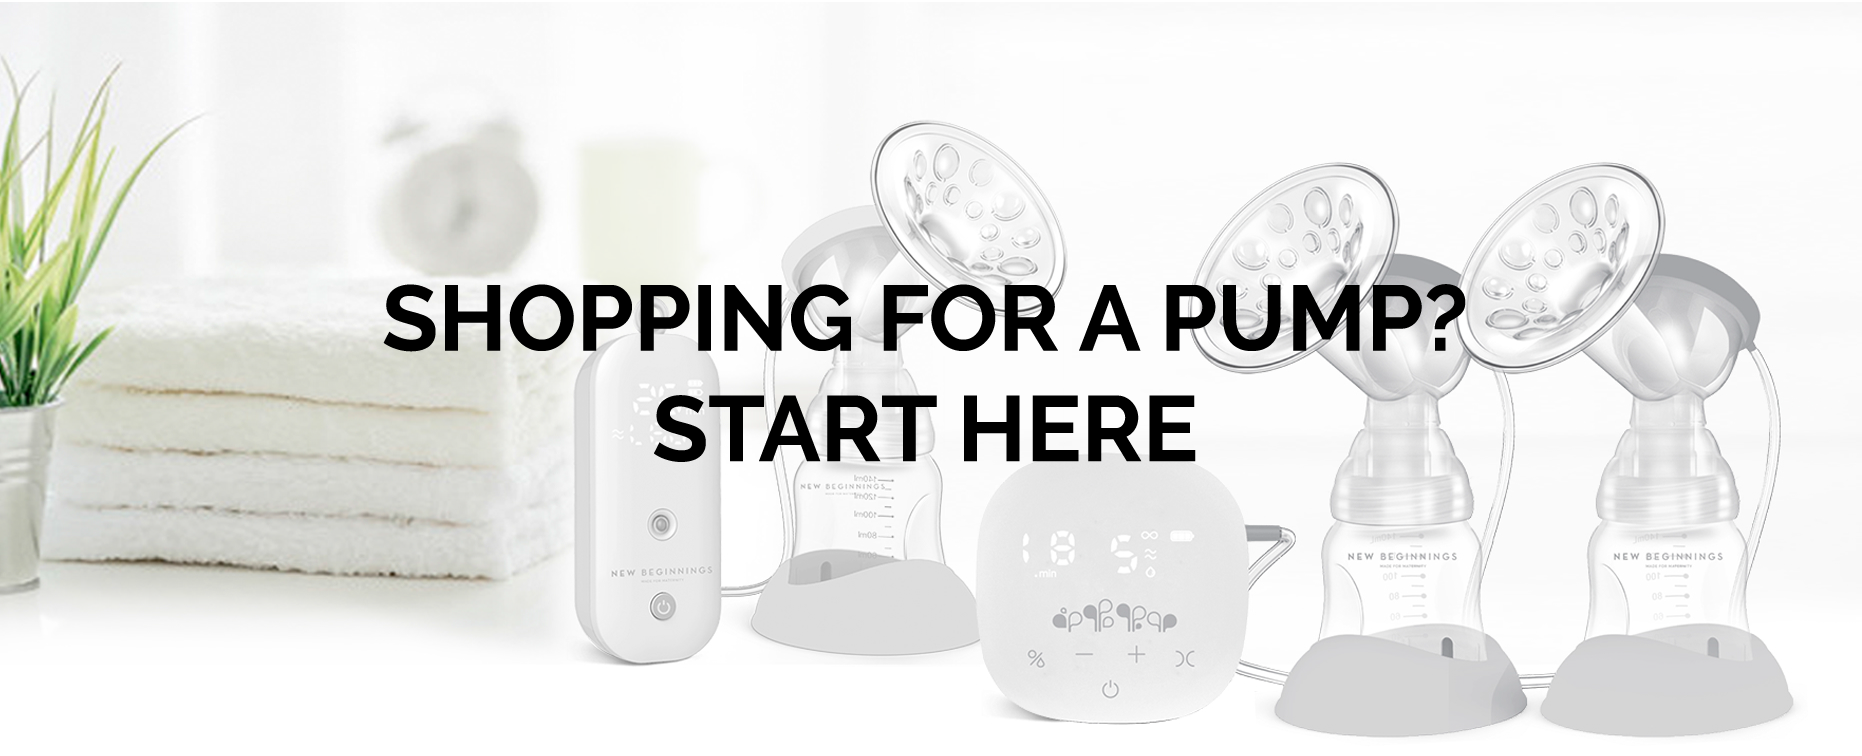 SHOPPING FOR A PUMP? START HERE